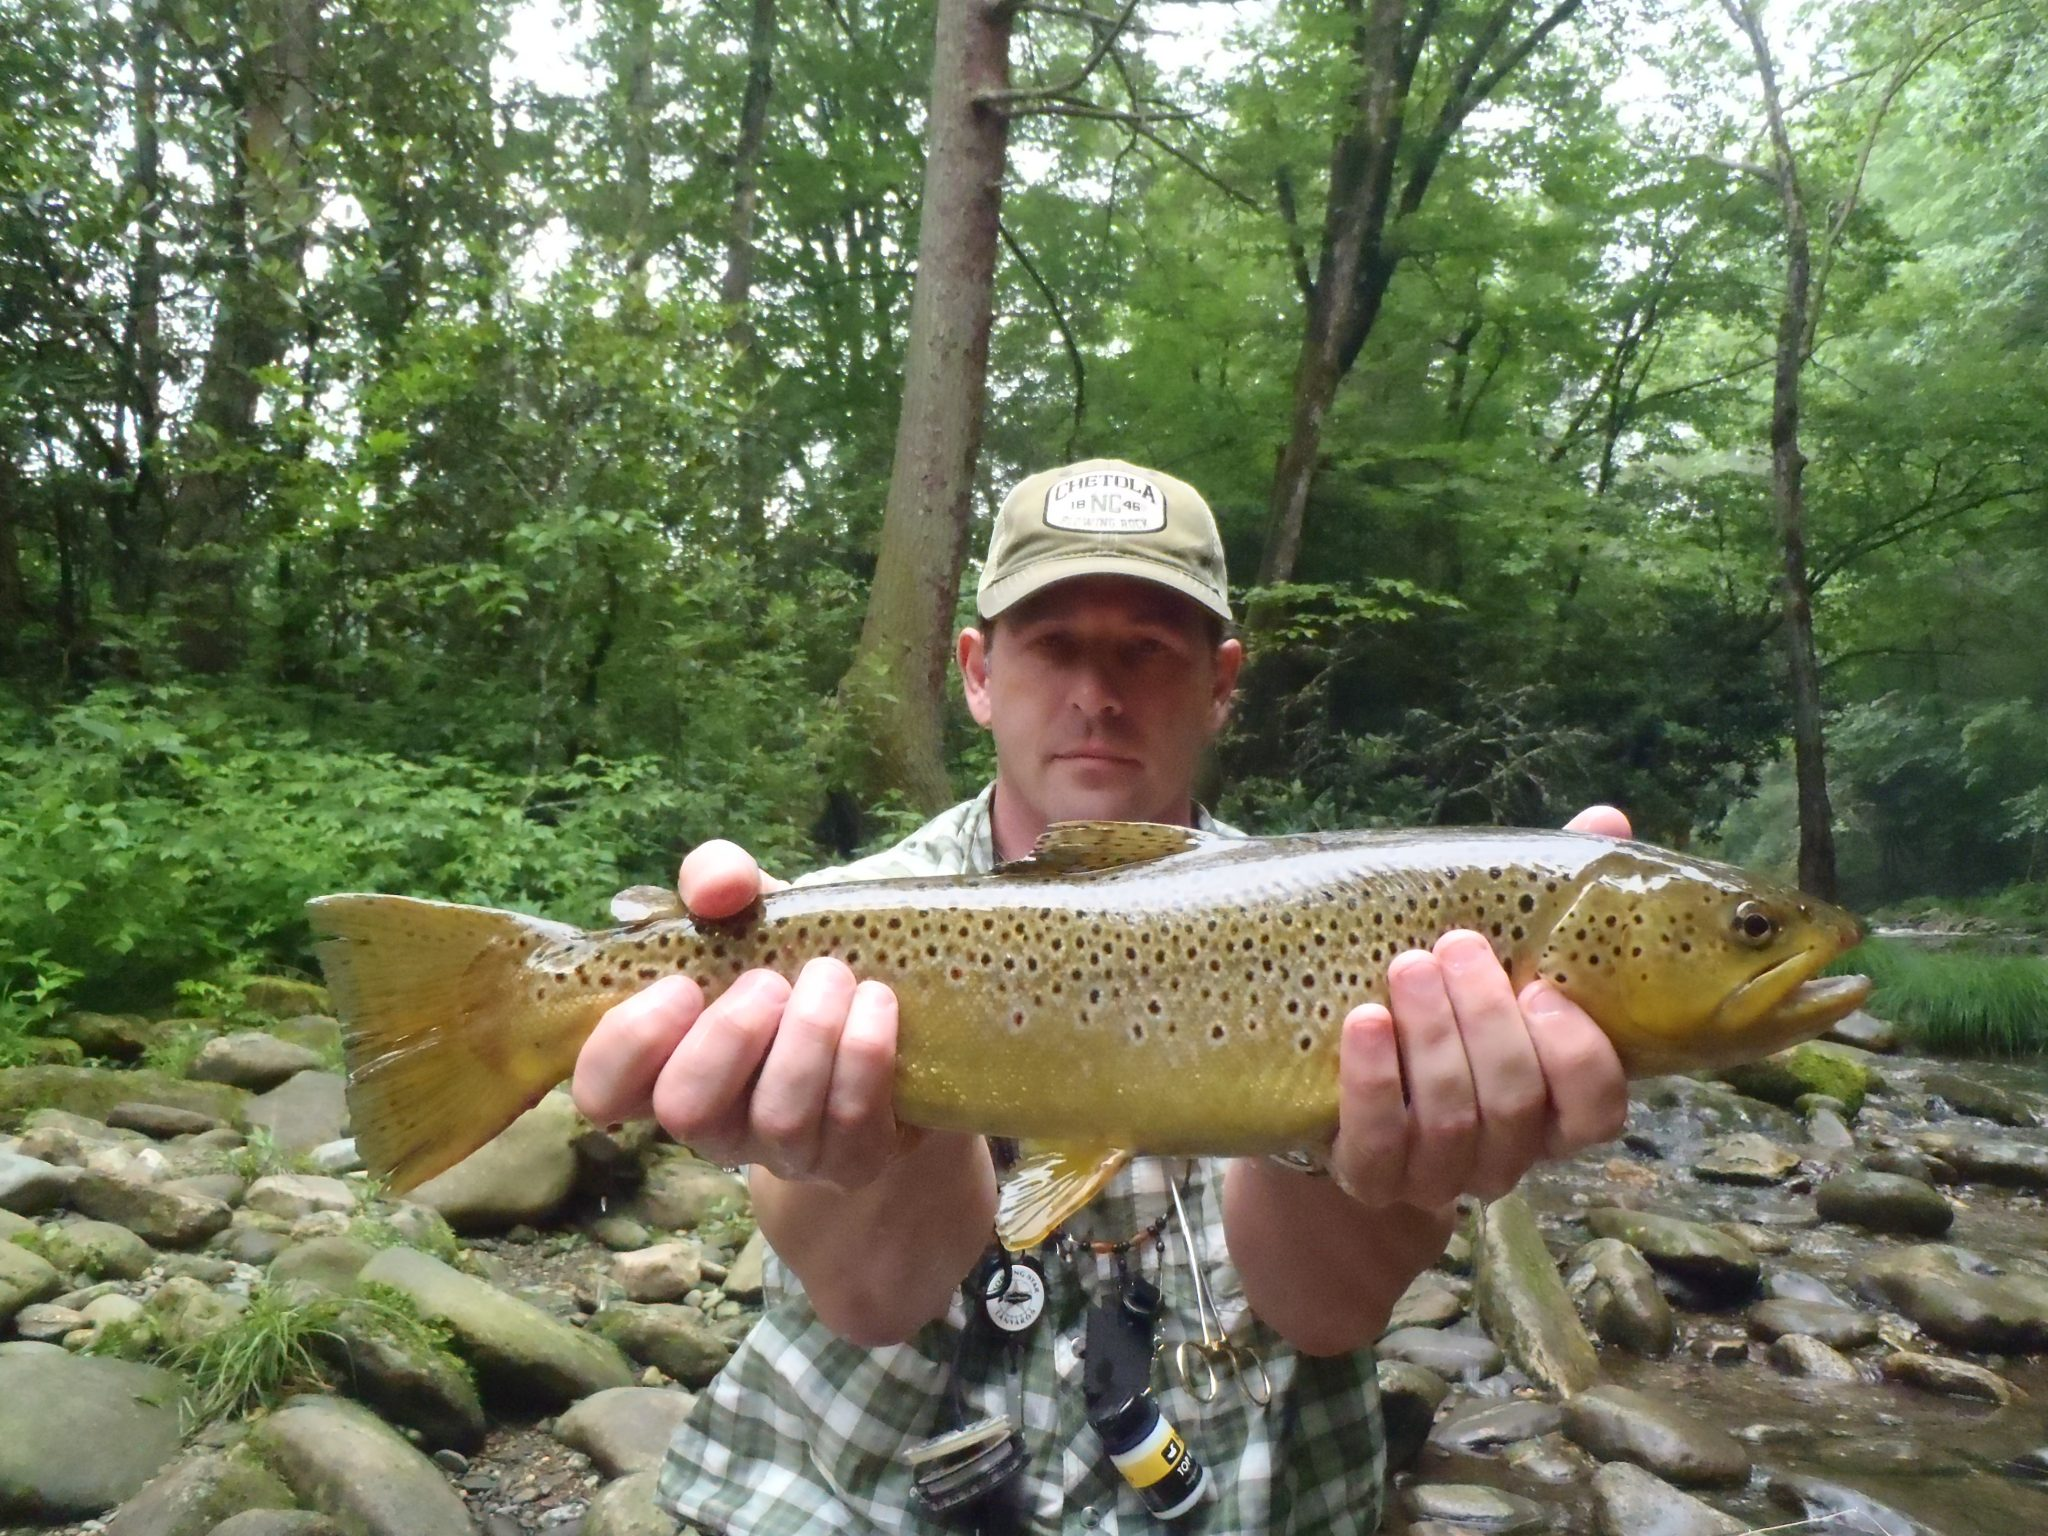 Davidson river fly fishing report june 20 2012 cwo for Davidson river fishing report